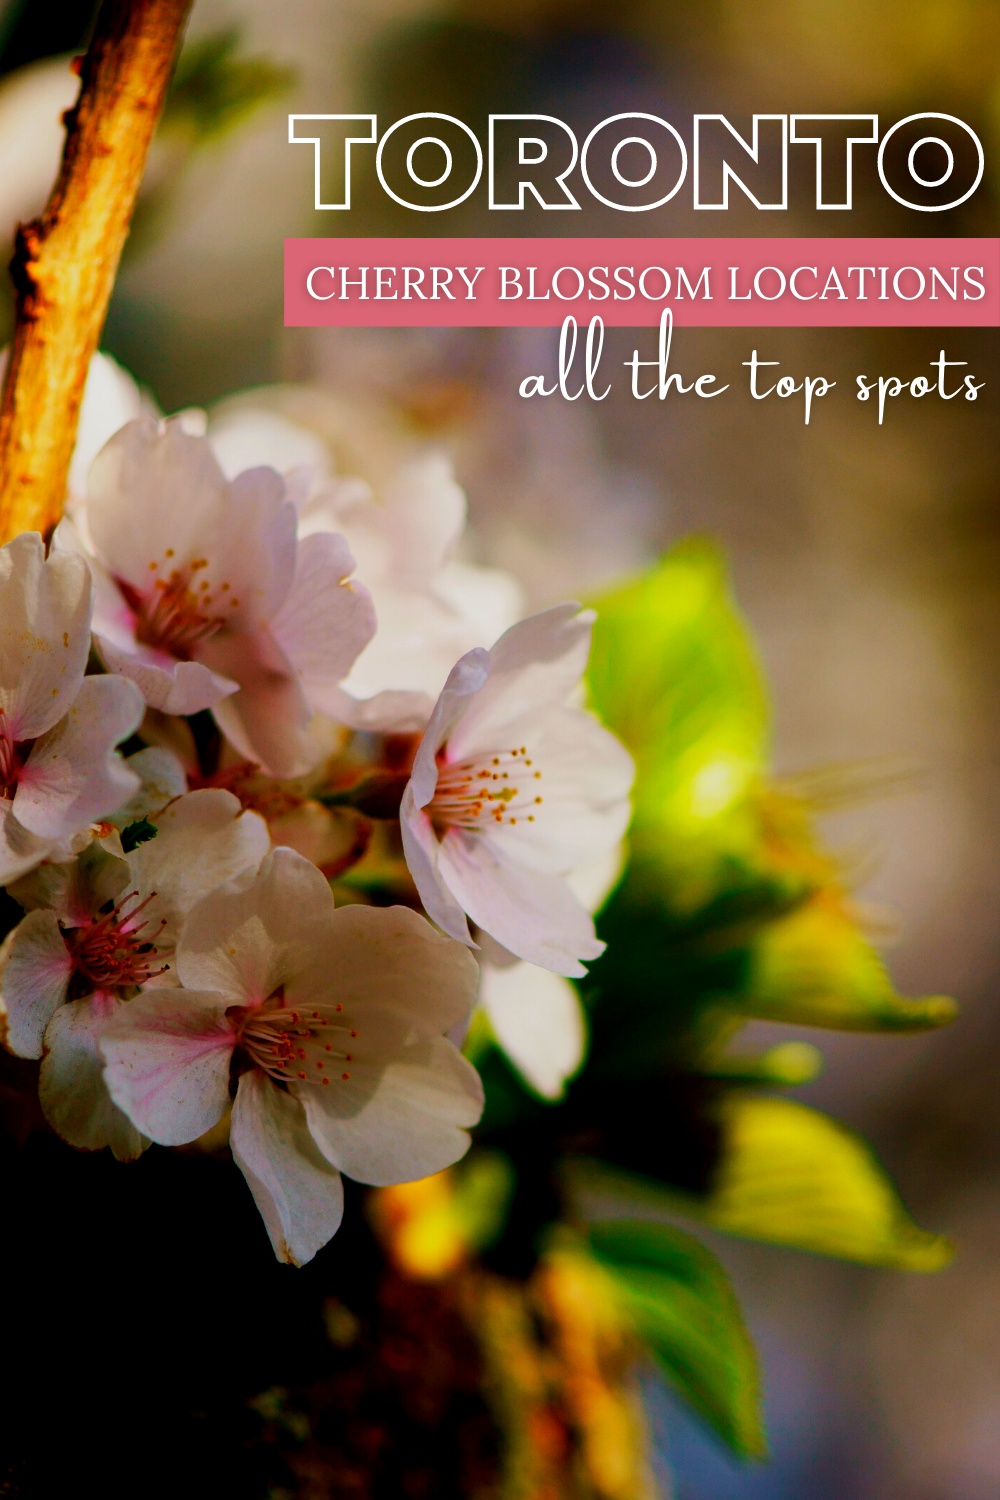 Cherry Blossom Locations In Around Toronto Ontario In 2021 Spring Travel Destinations Cherry Blossom Canadian Travel